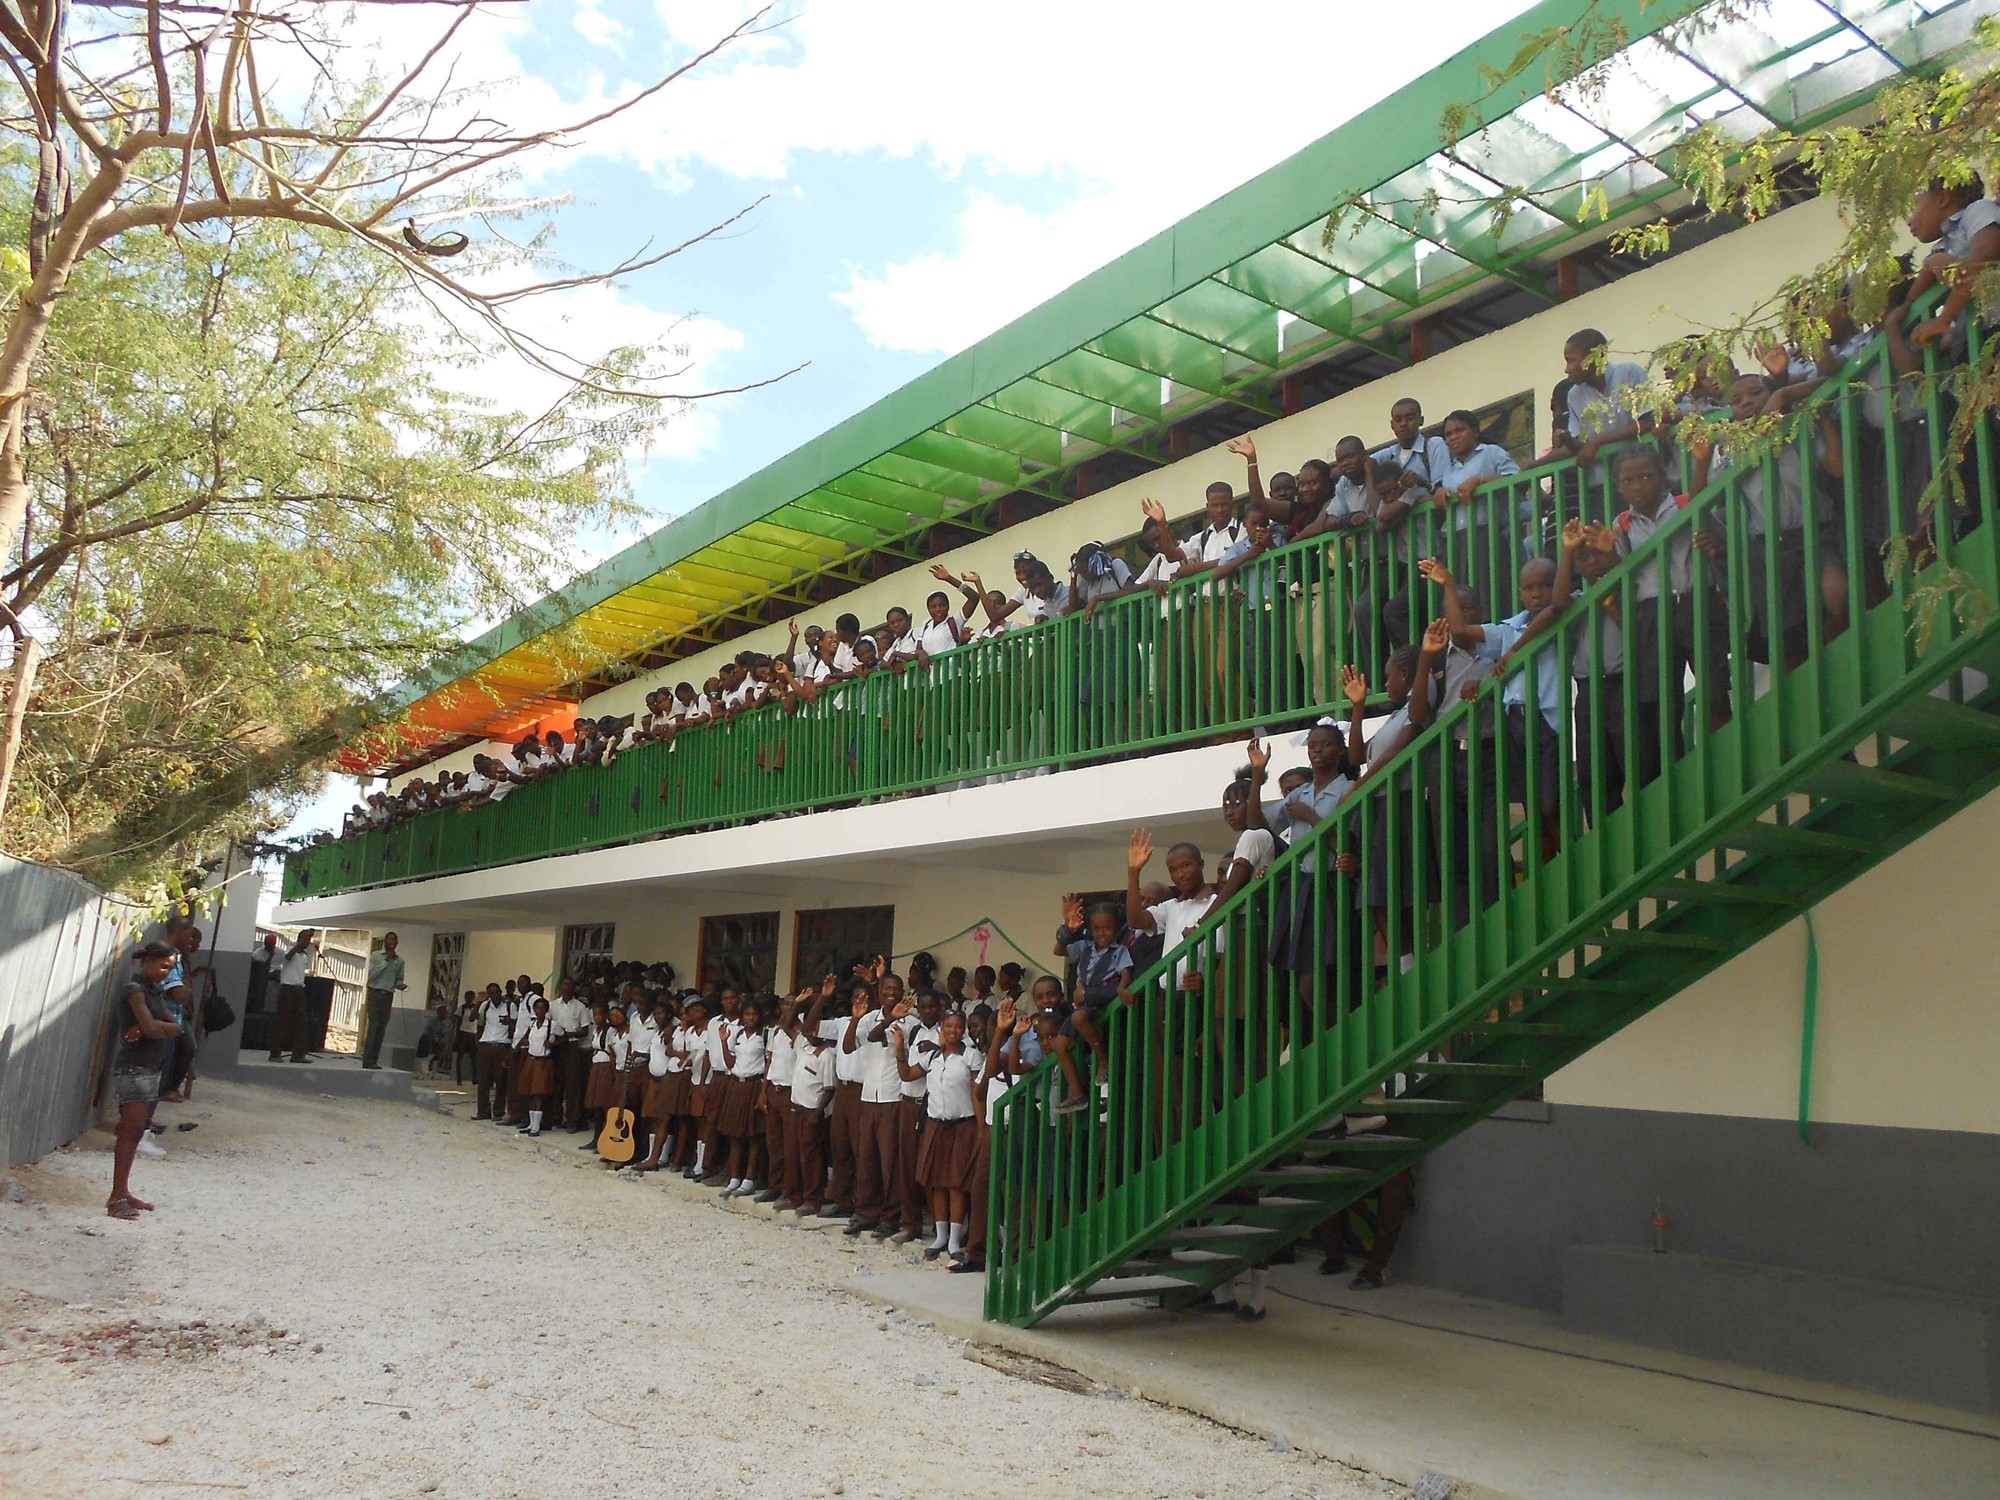 Architecture for Humanity Announces Completion of Haiti Initiatives, Collège Mixte Le Bon Berger. Image Courtesy of Architecture for Humanity